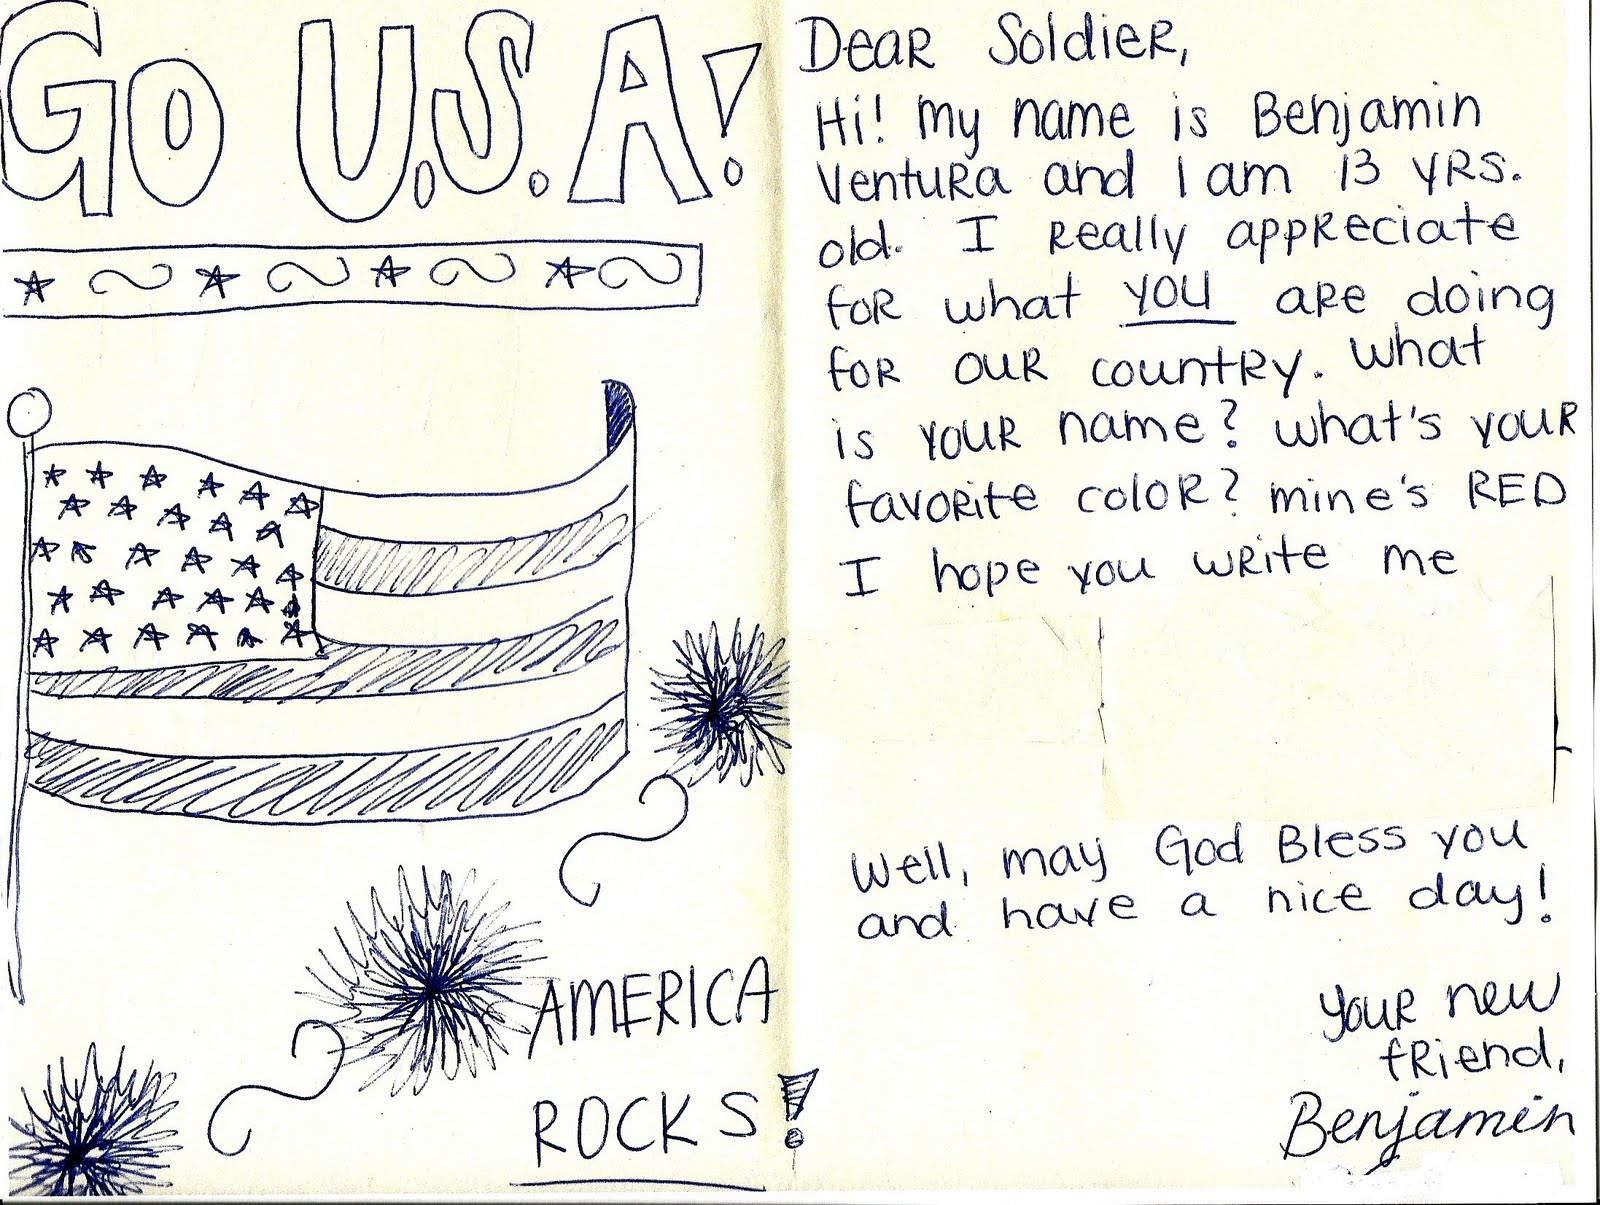 write a letter to a solider